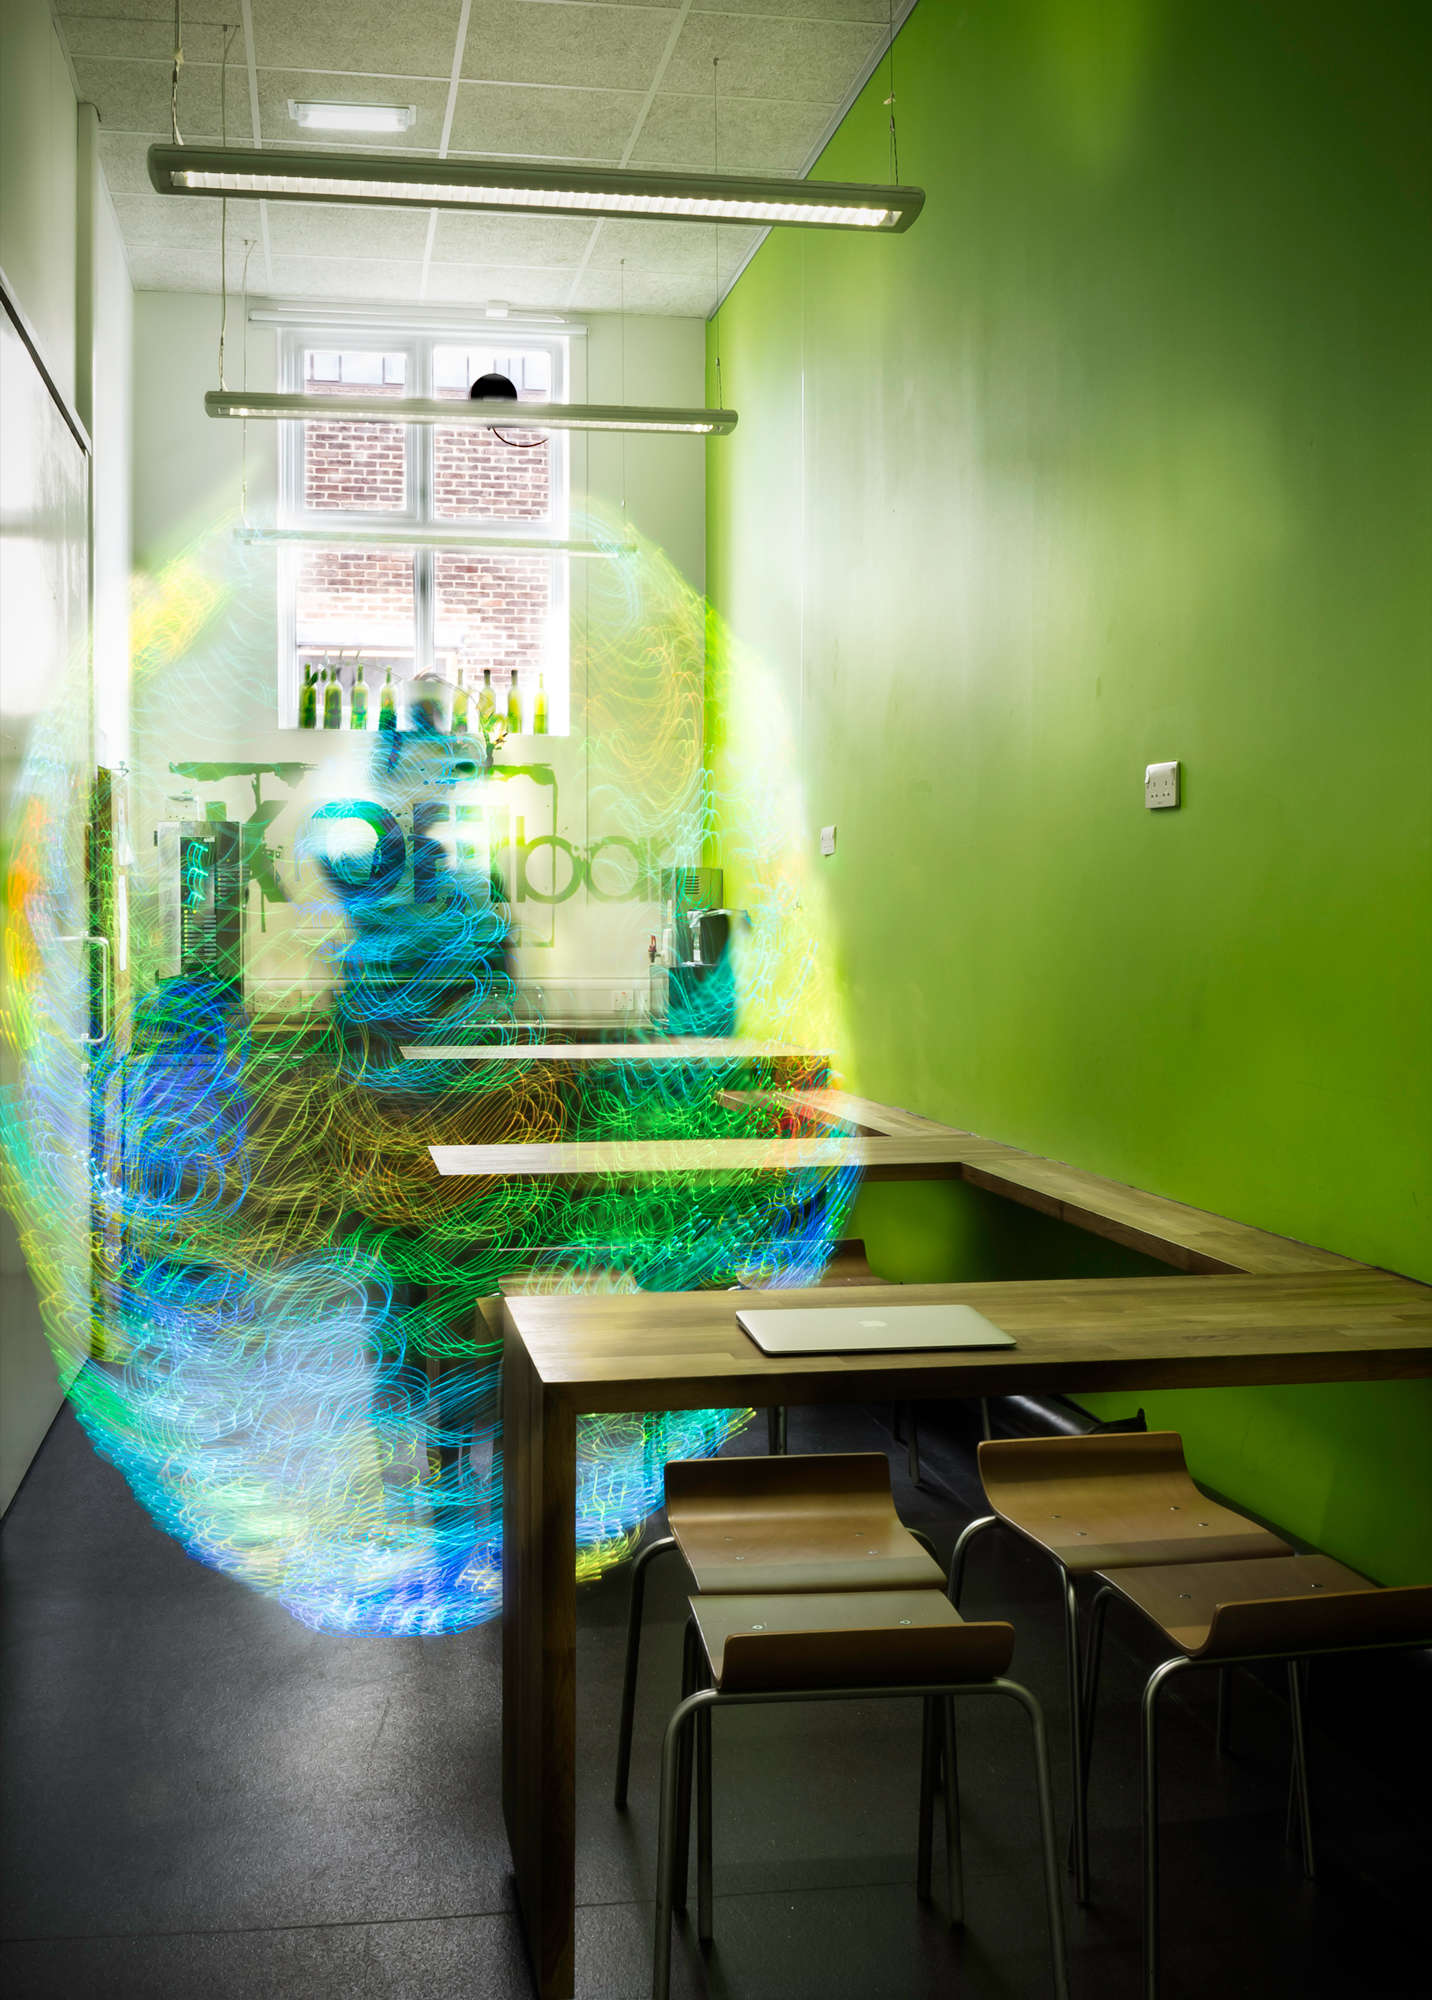 Then he used long-exposure photography to capture the ghostly images of the colorful Wi-Fi signals.